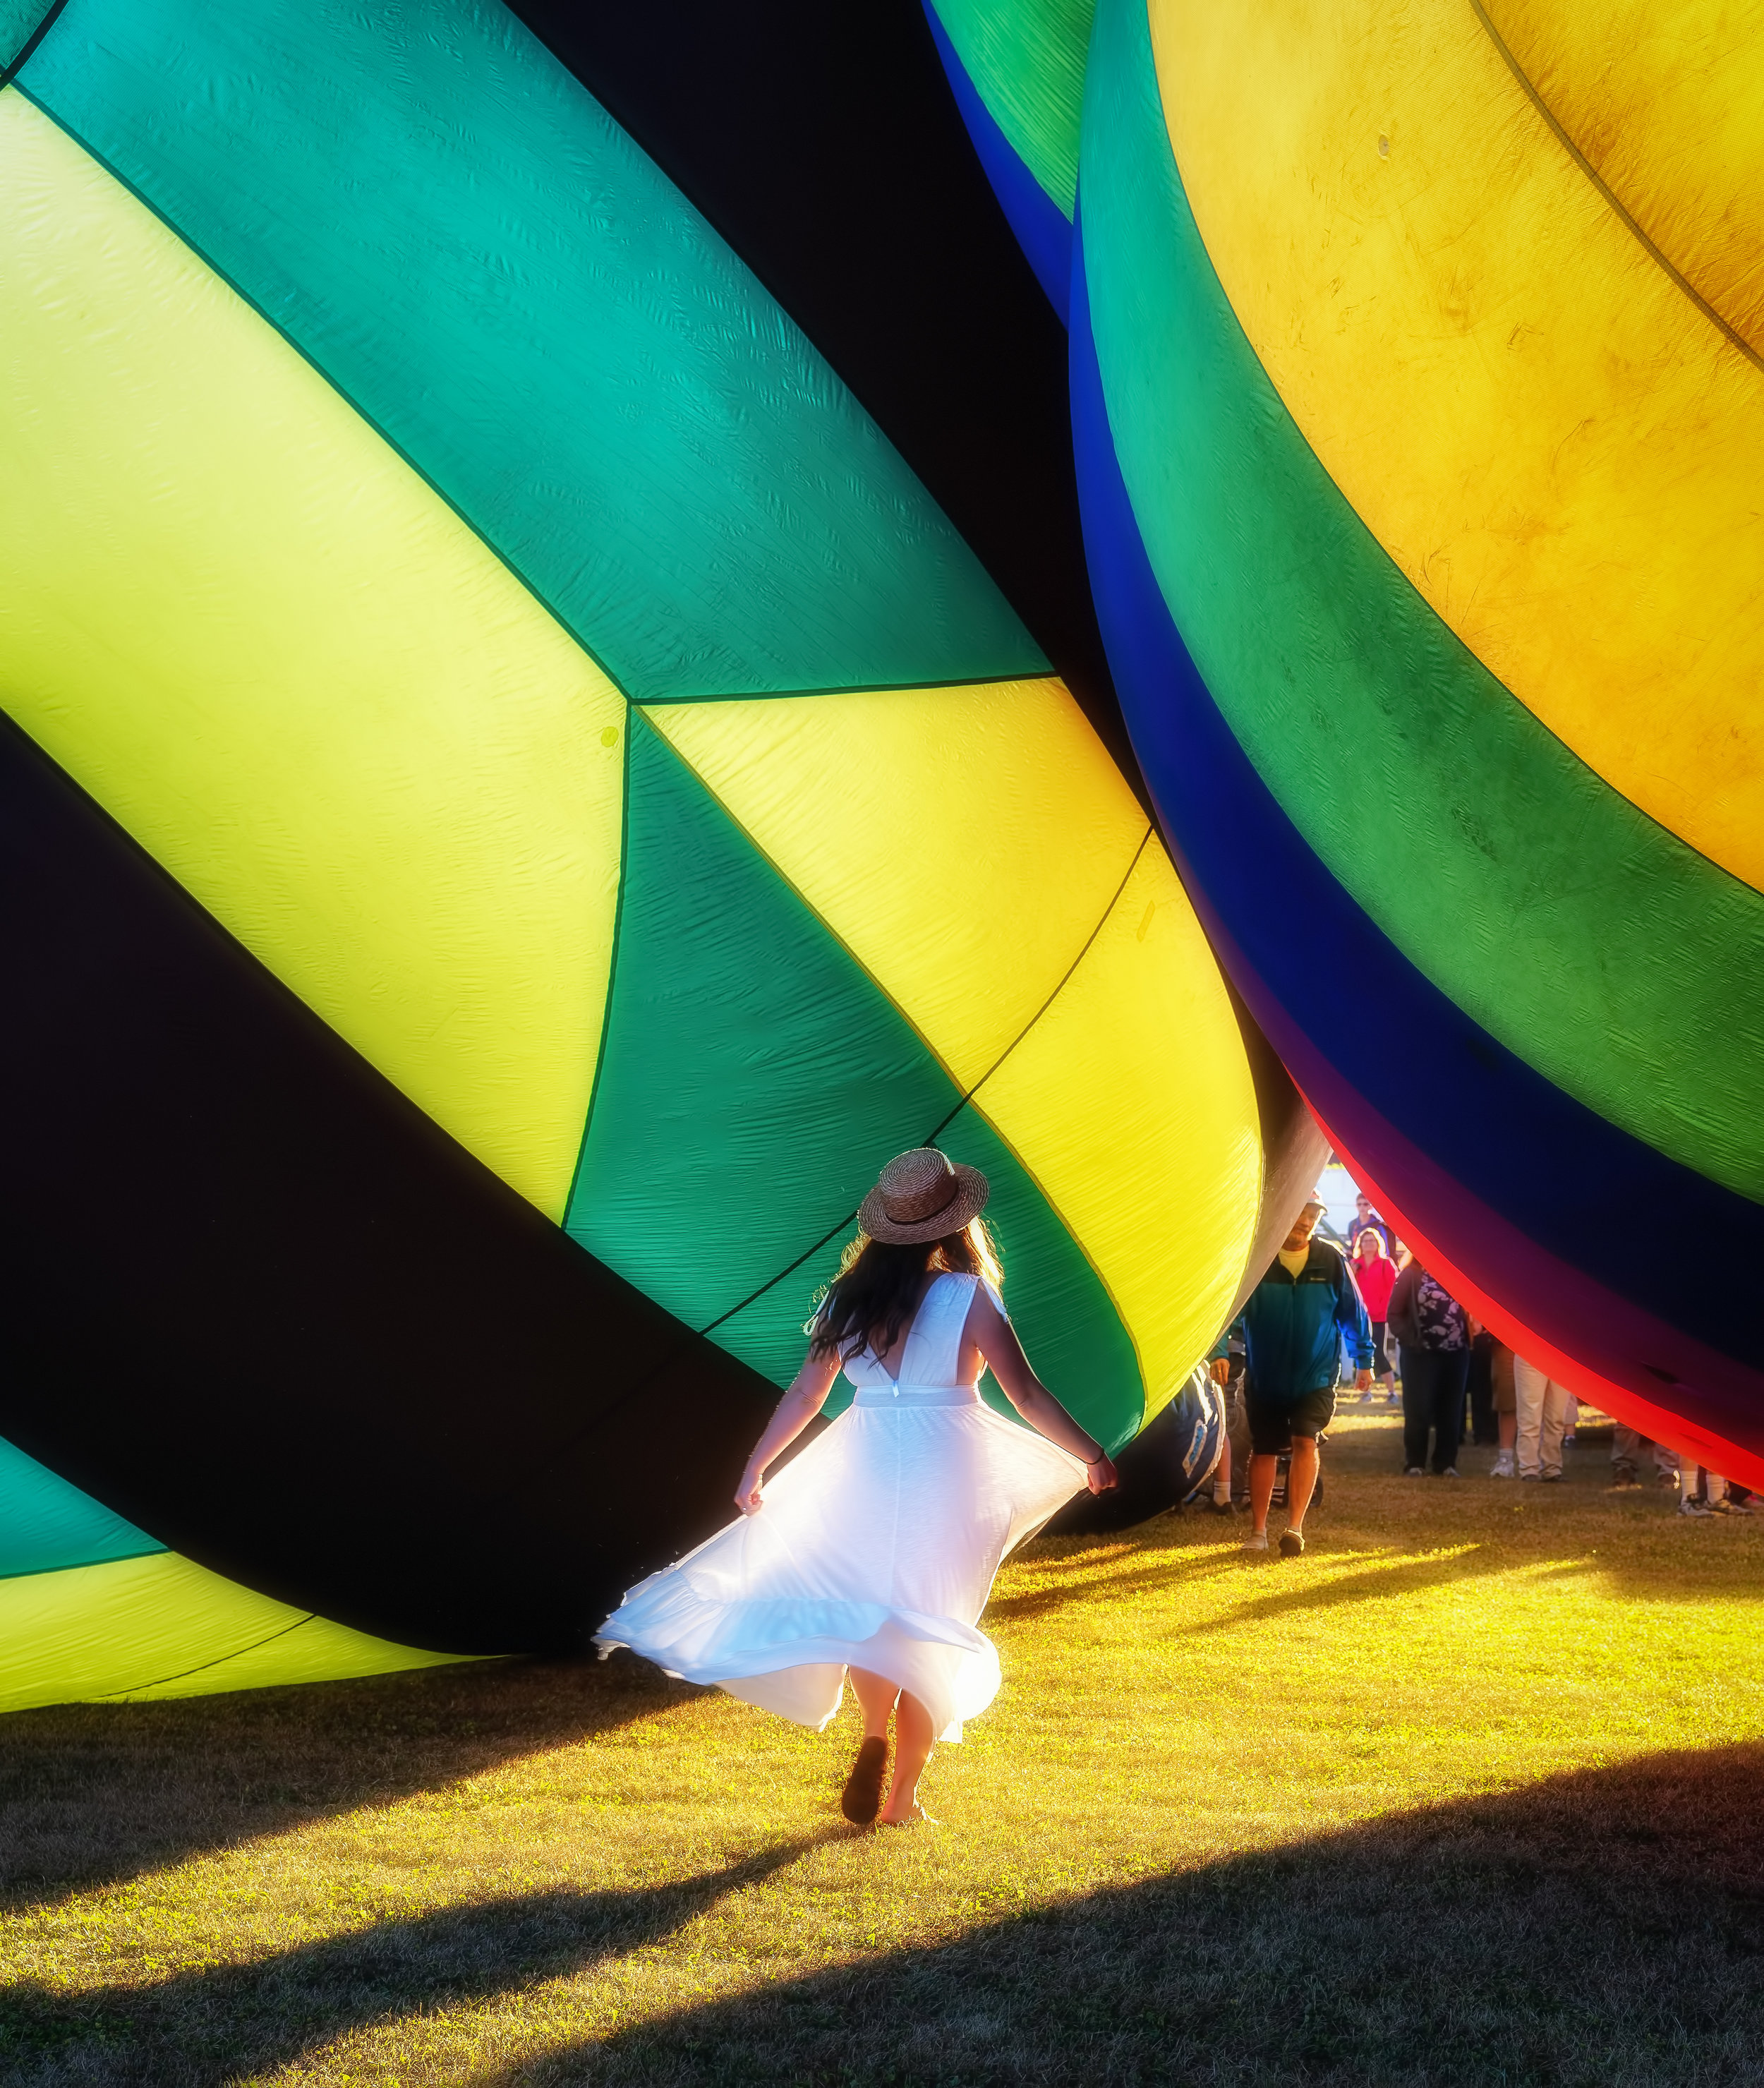 Dancing with Balloons - Hudson Valley Balloon Festival, Summer 2018 - Nikon D750, 1/125 @ f/7.1, ISO200, 70mm - See my poem of the same title in the Poetry section.